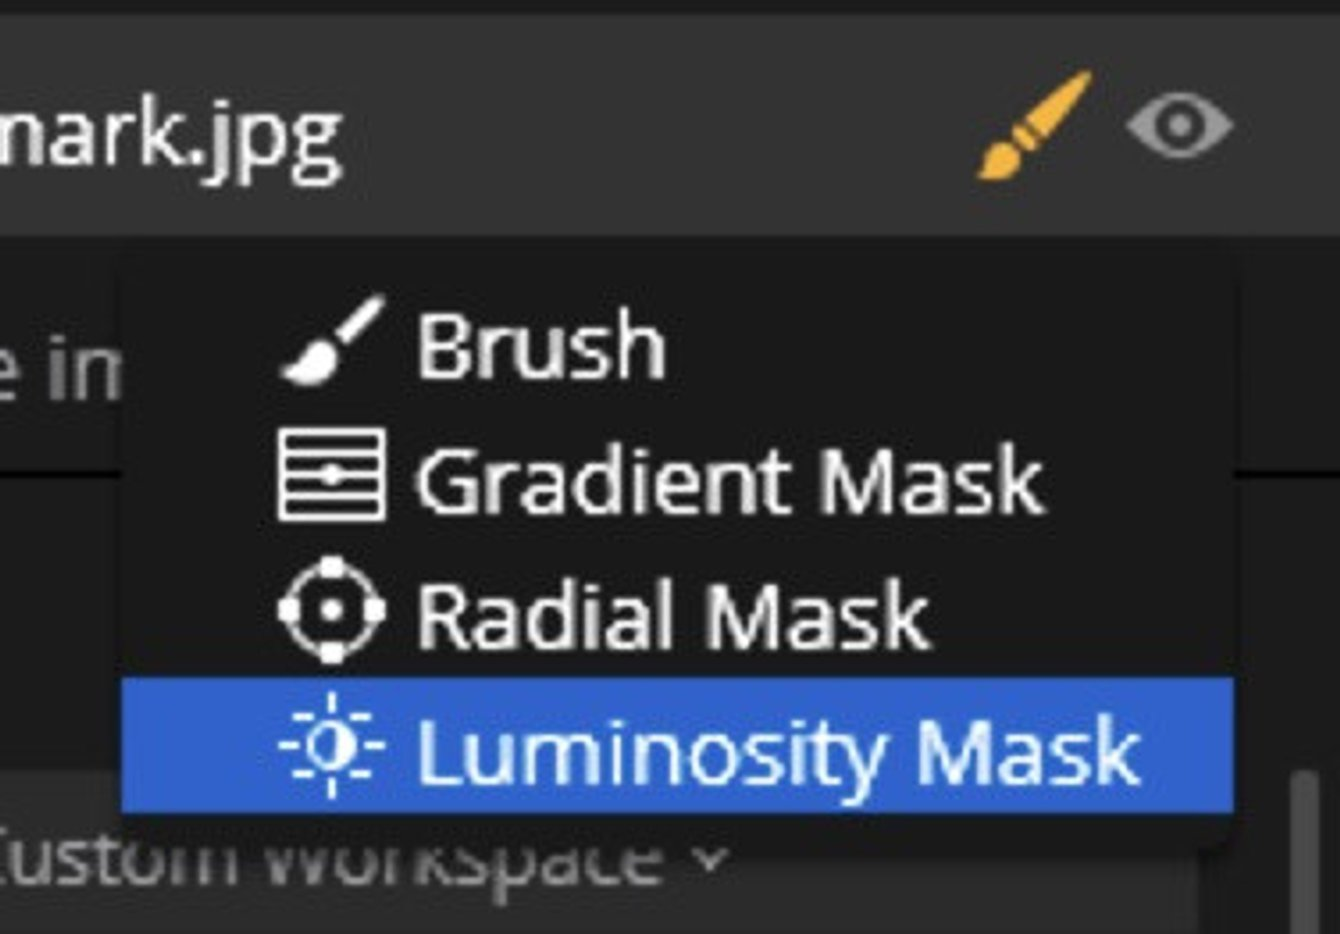 lightroom adjustment brush opacity